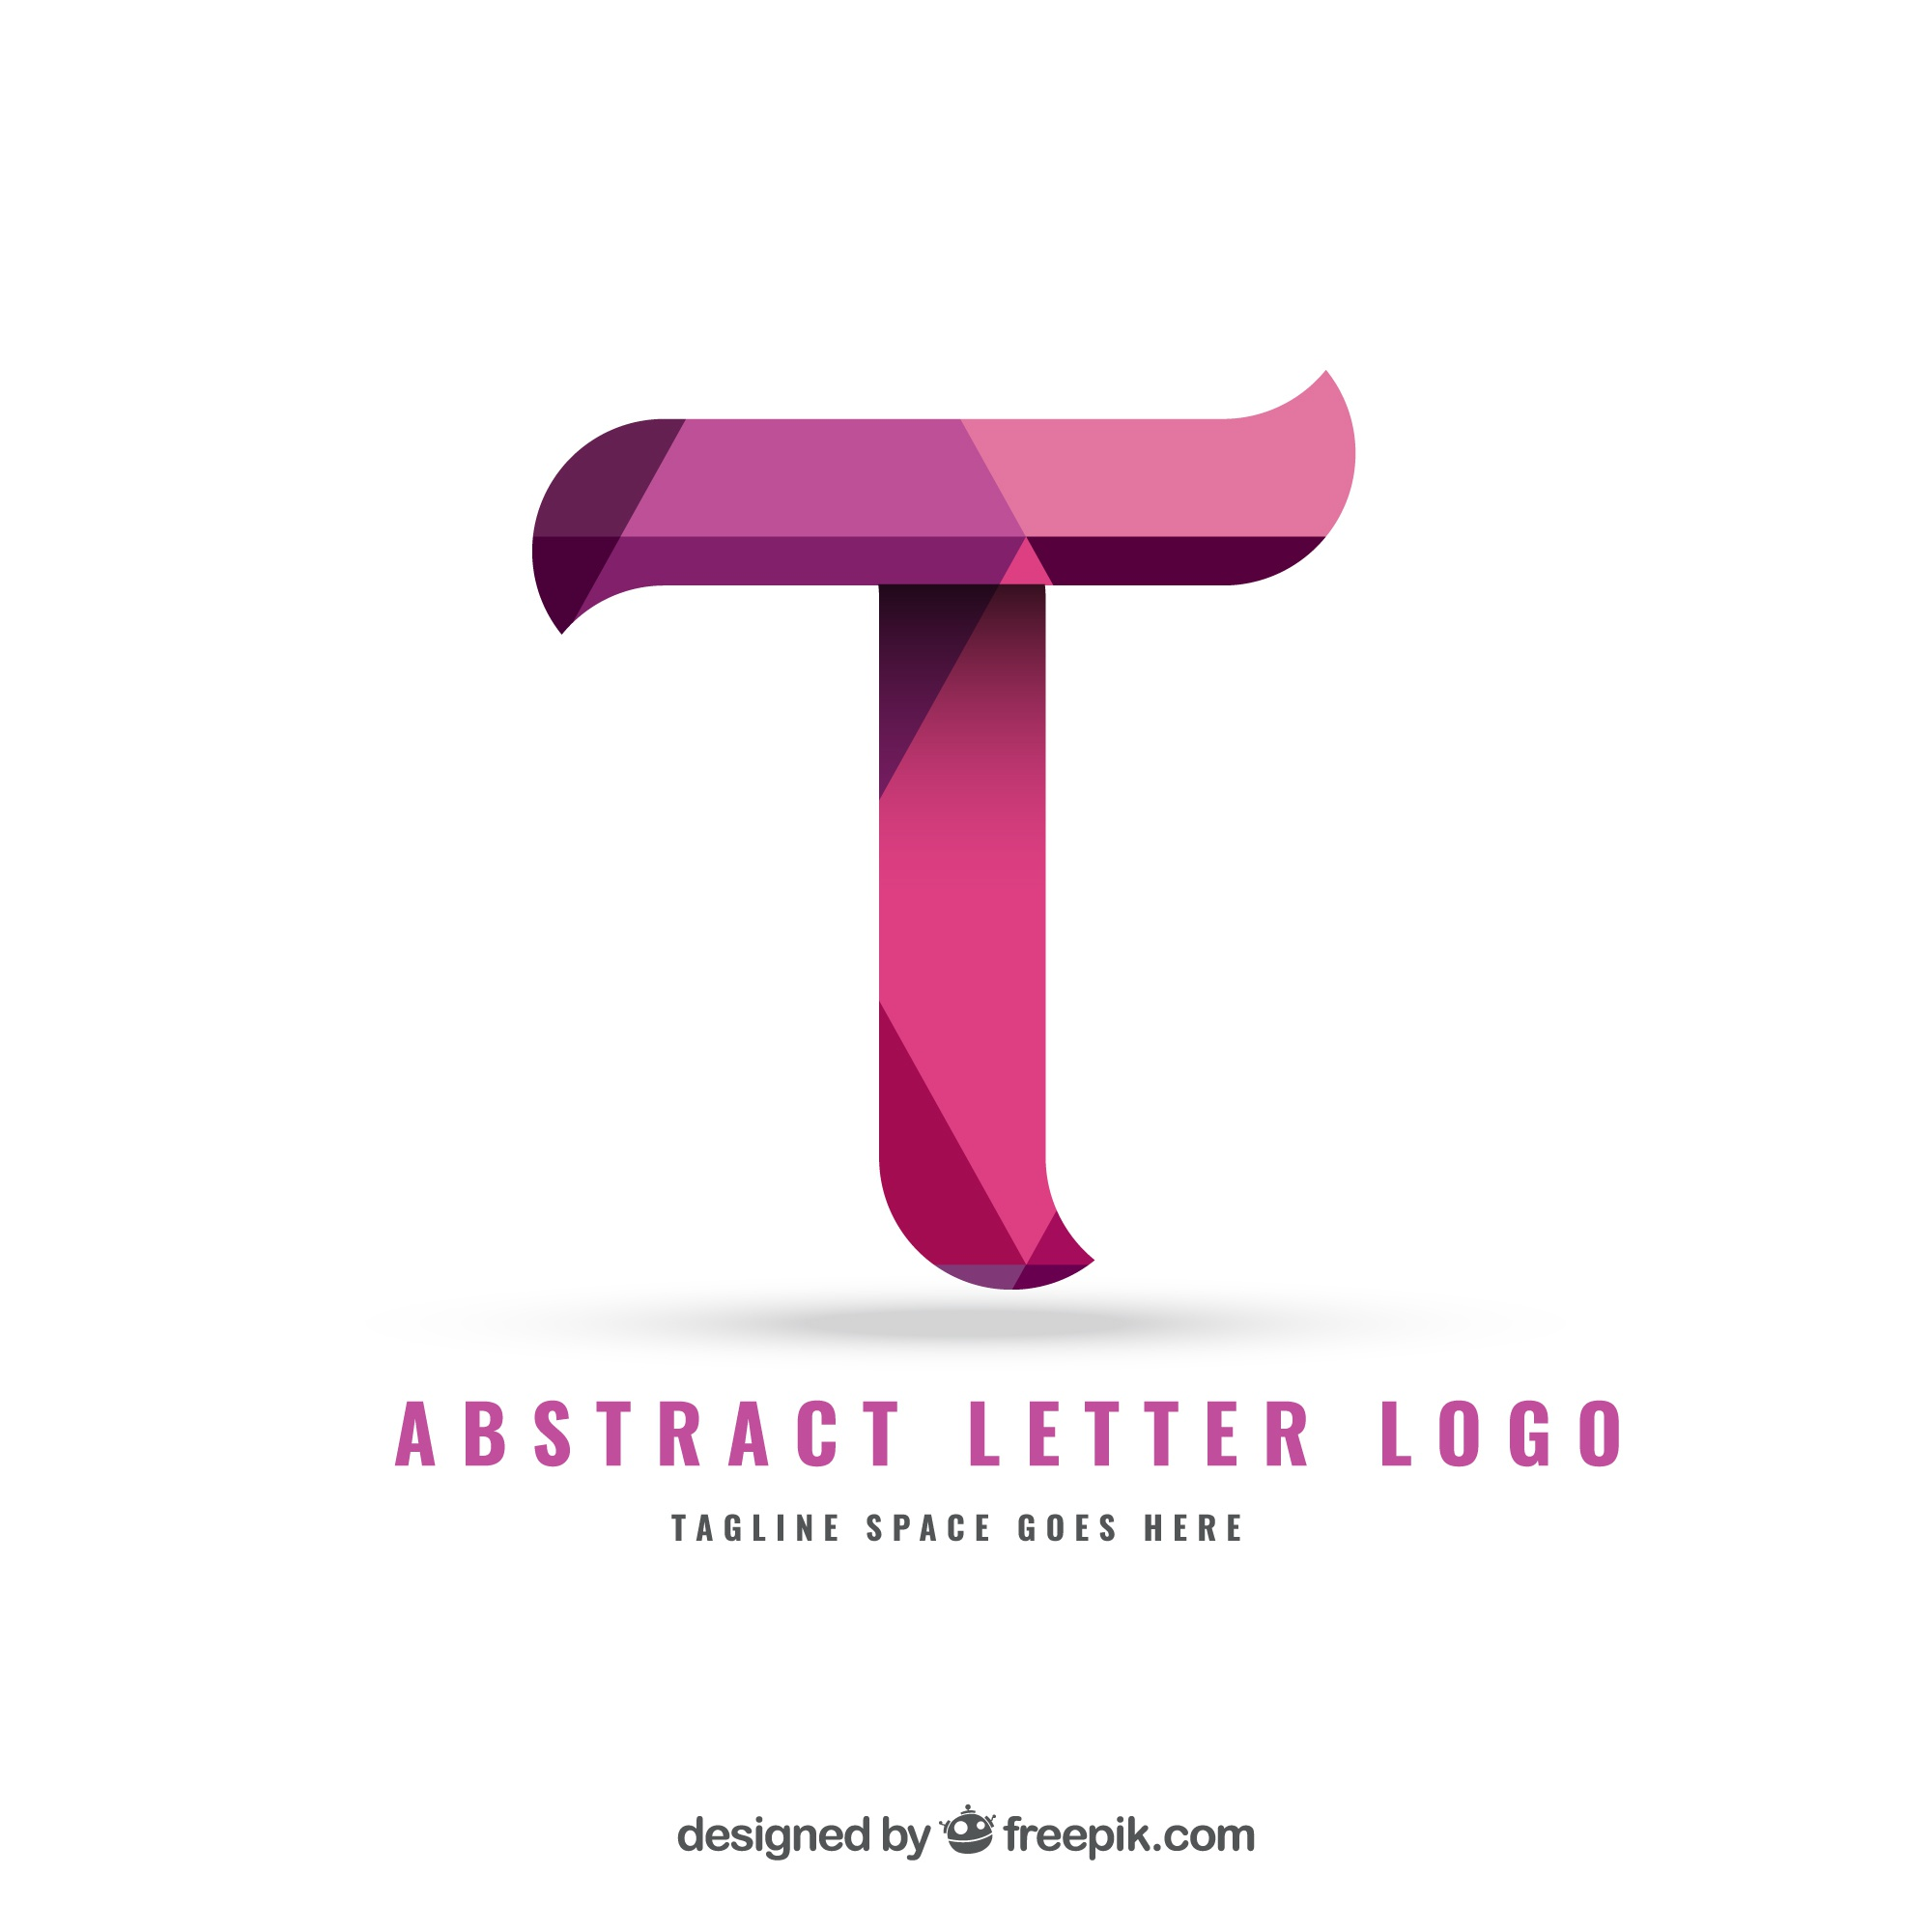 in your letter logo templates vectors 8 000 free files in ai eps format 22540